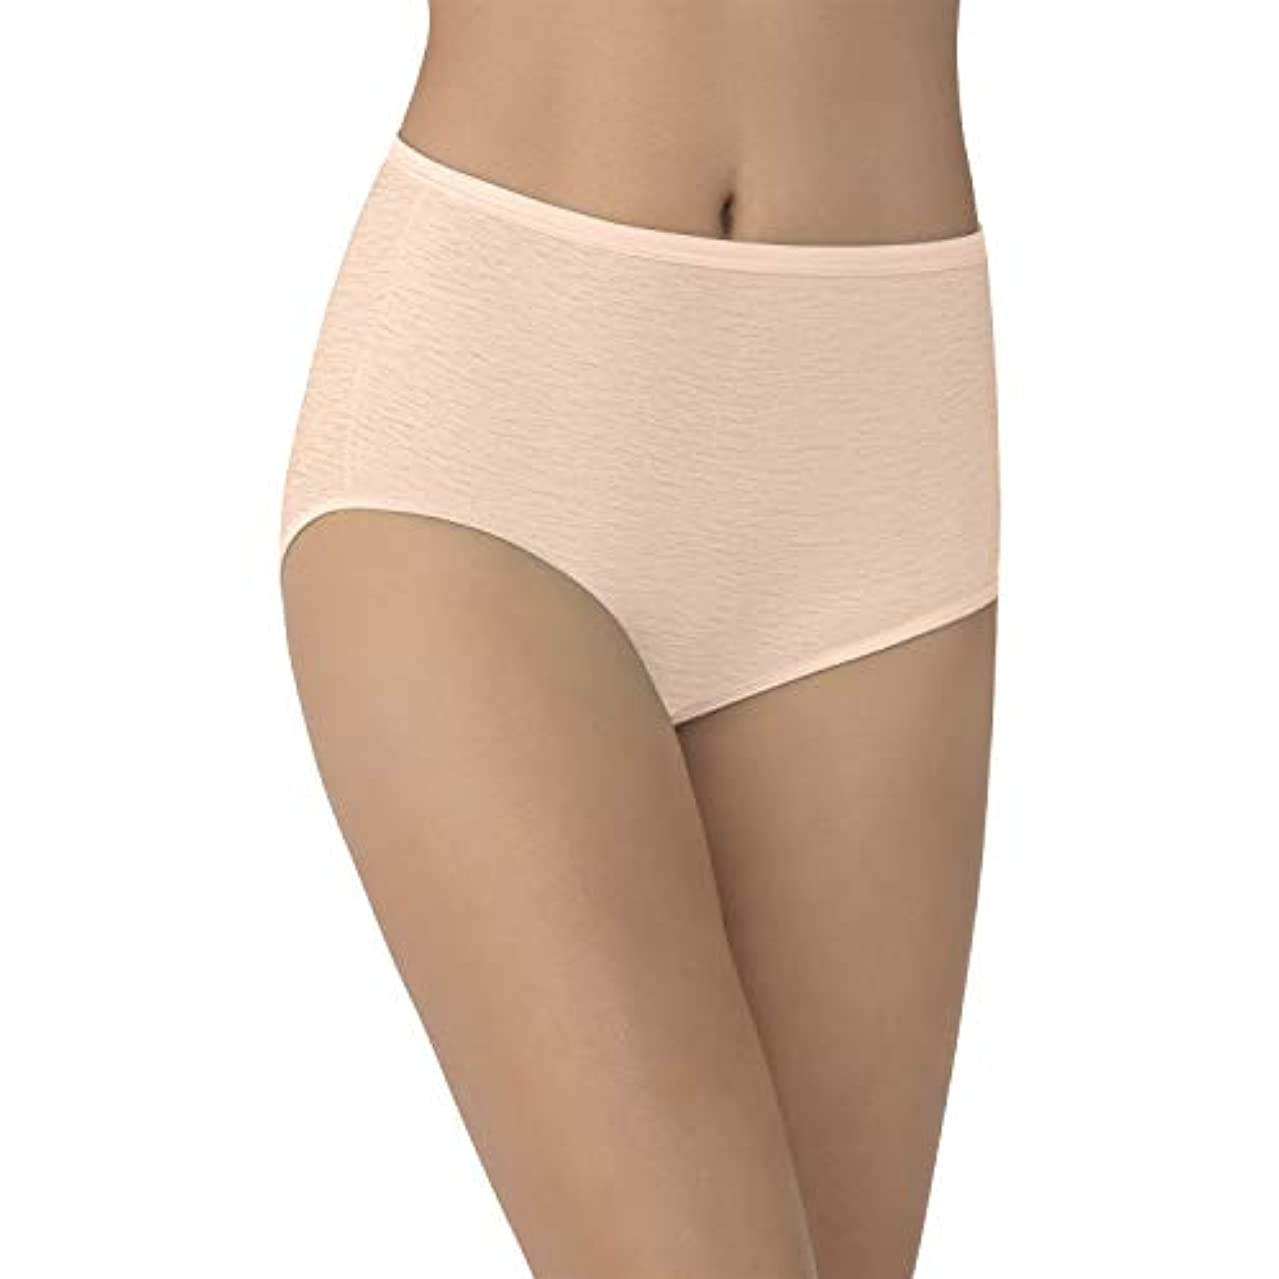 Vanity Fair Women's Underwear Illumination Brief Panty 13109